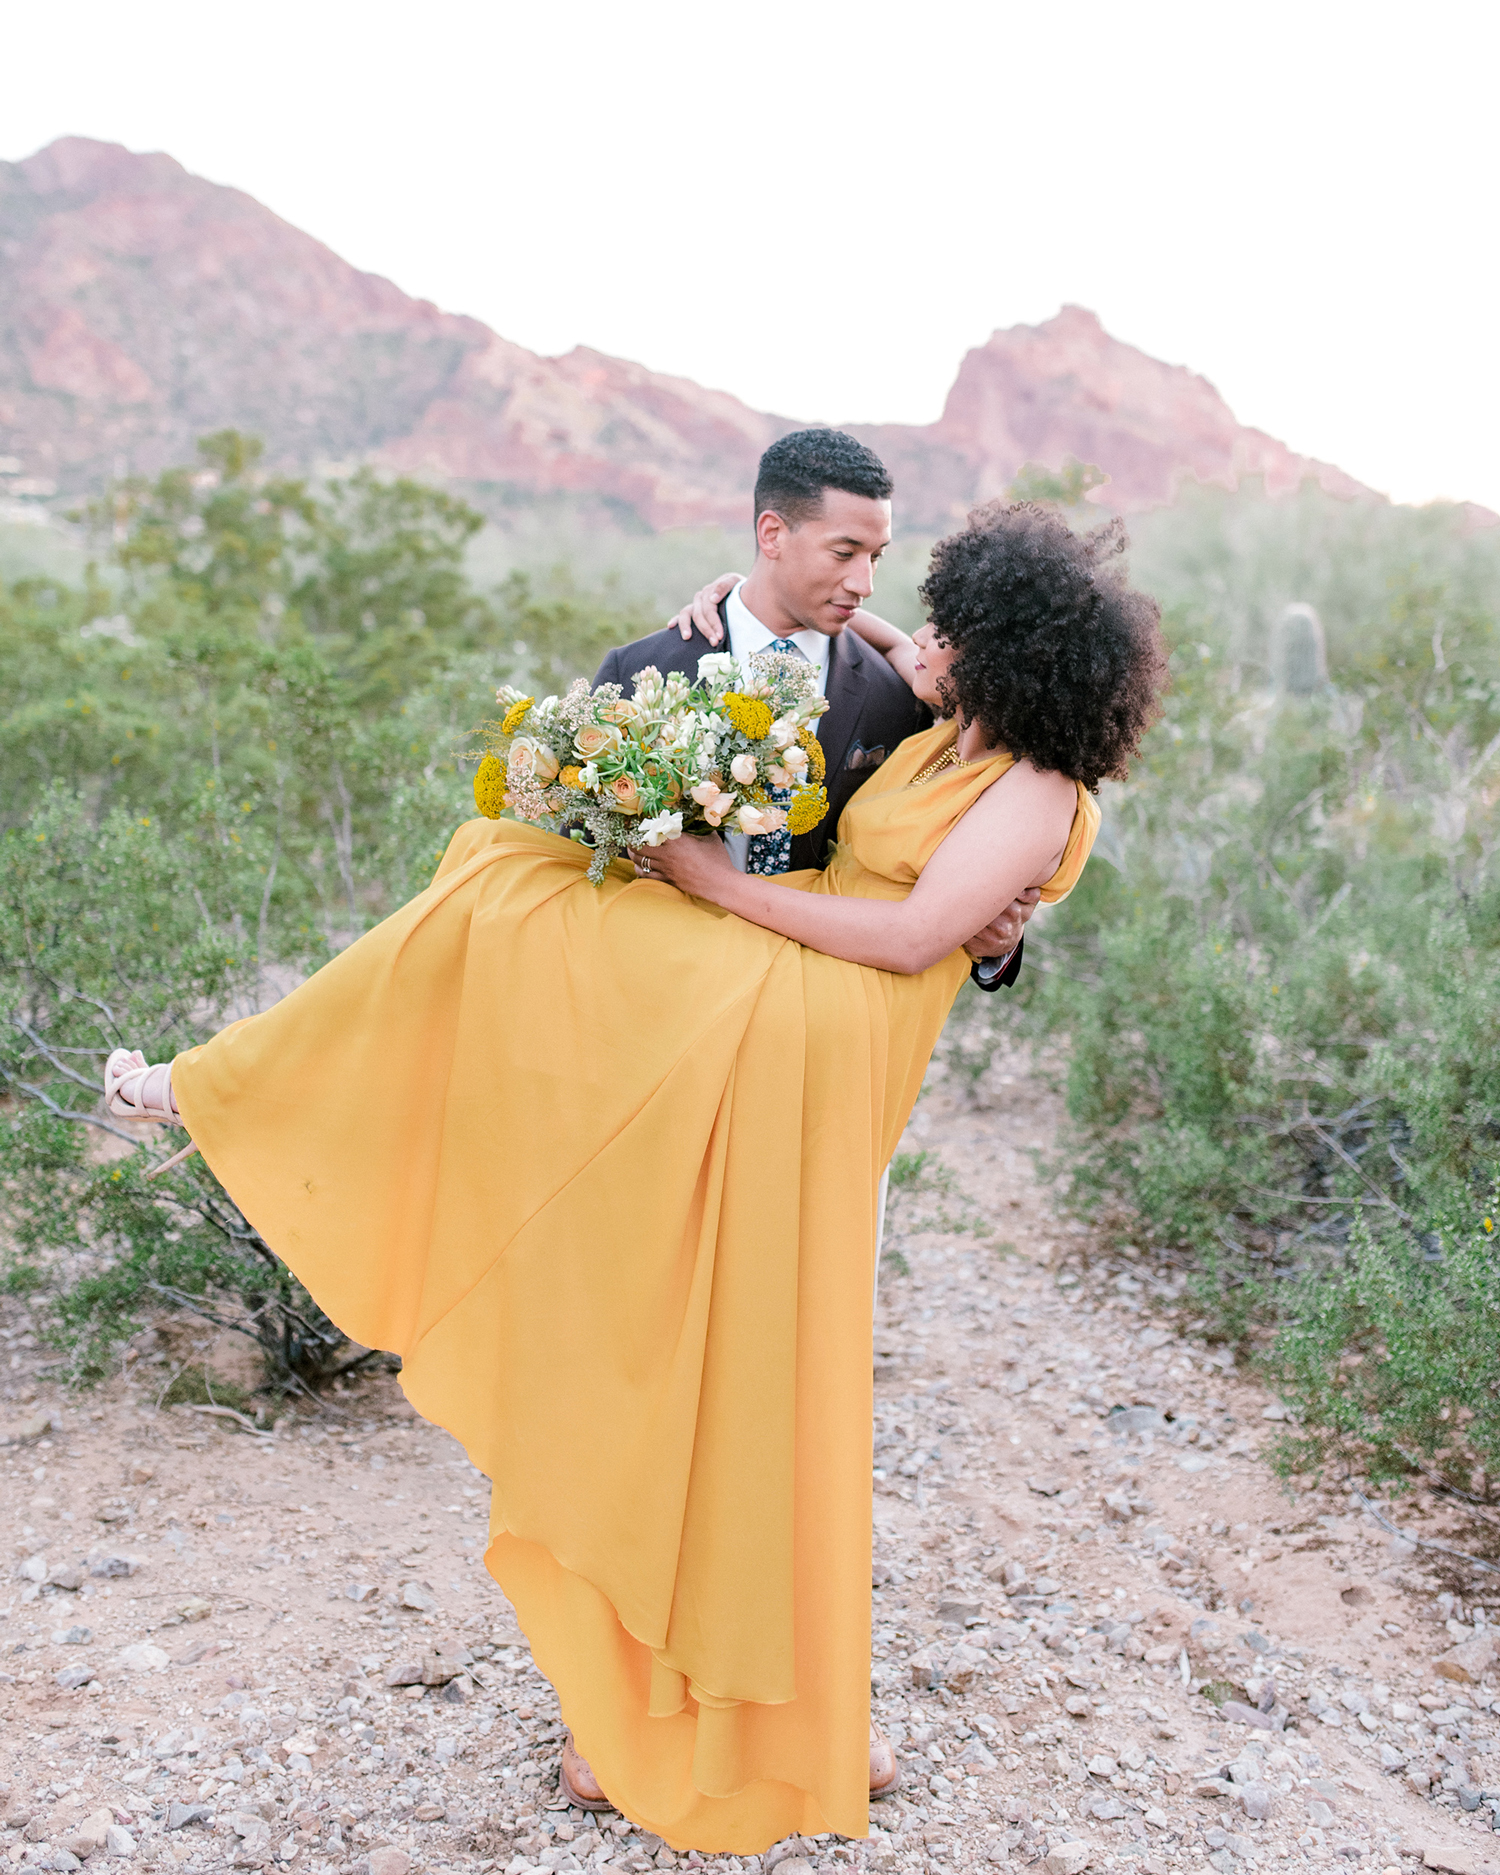 sunset wedding photos groom carrying bride in desert